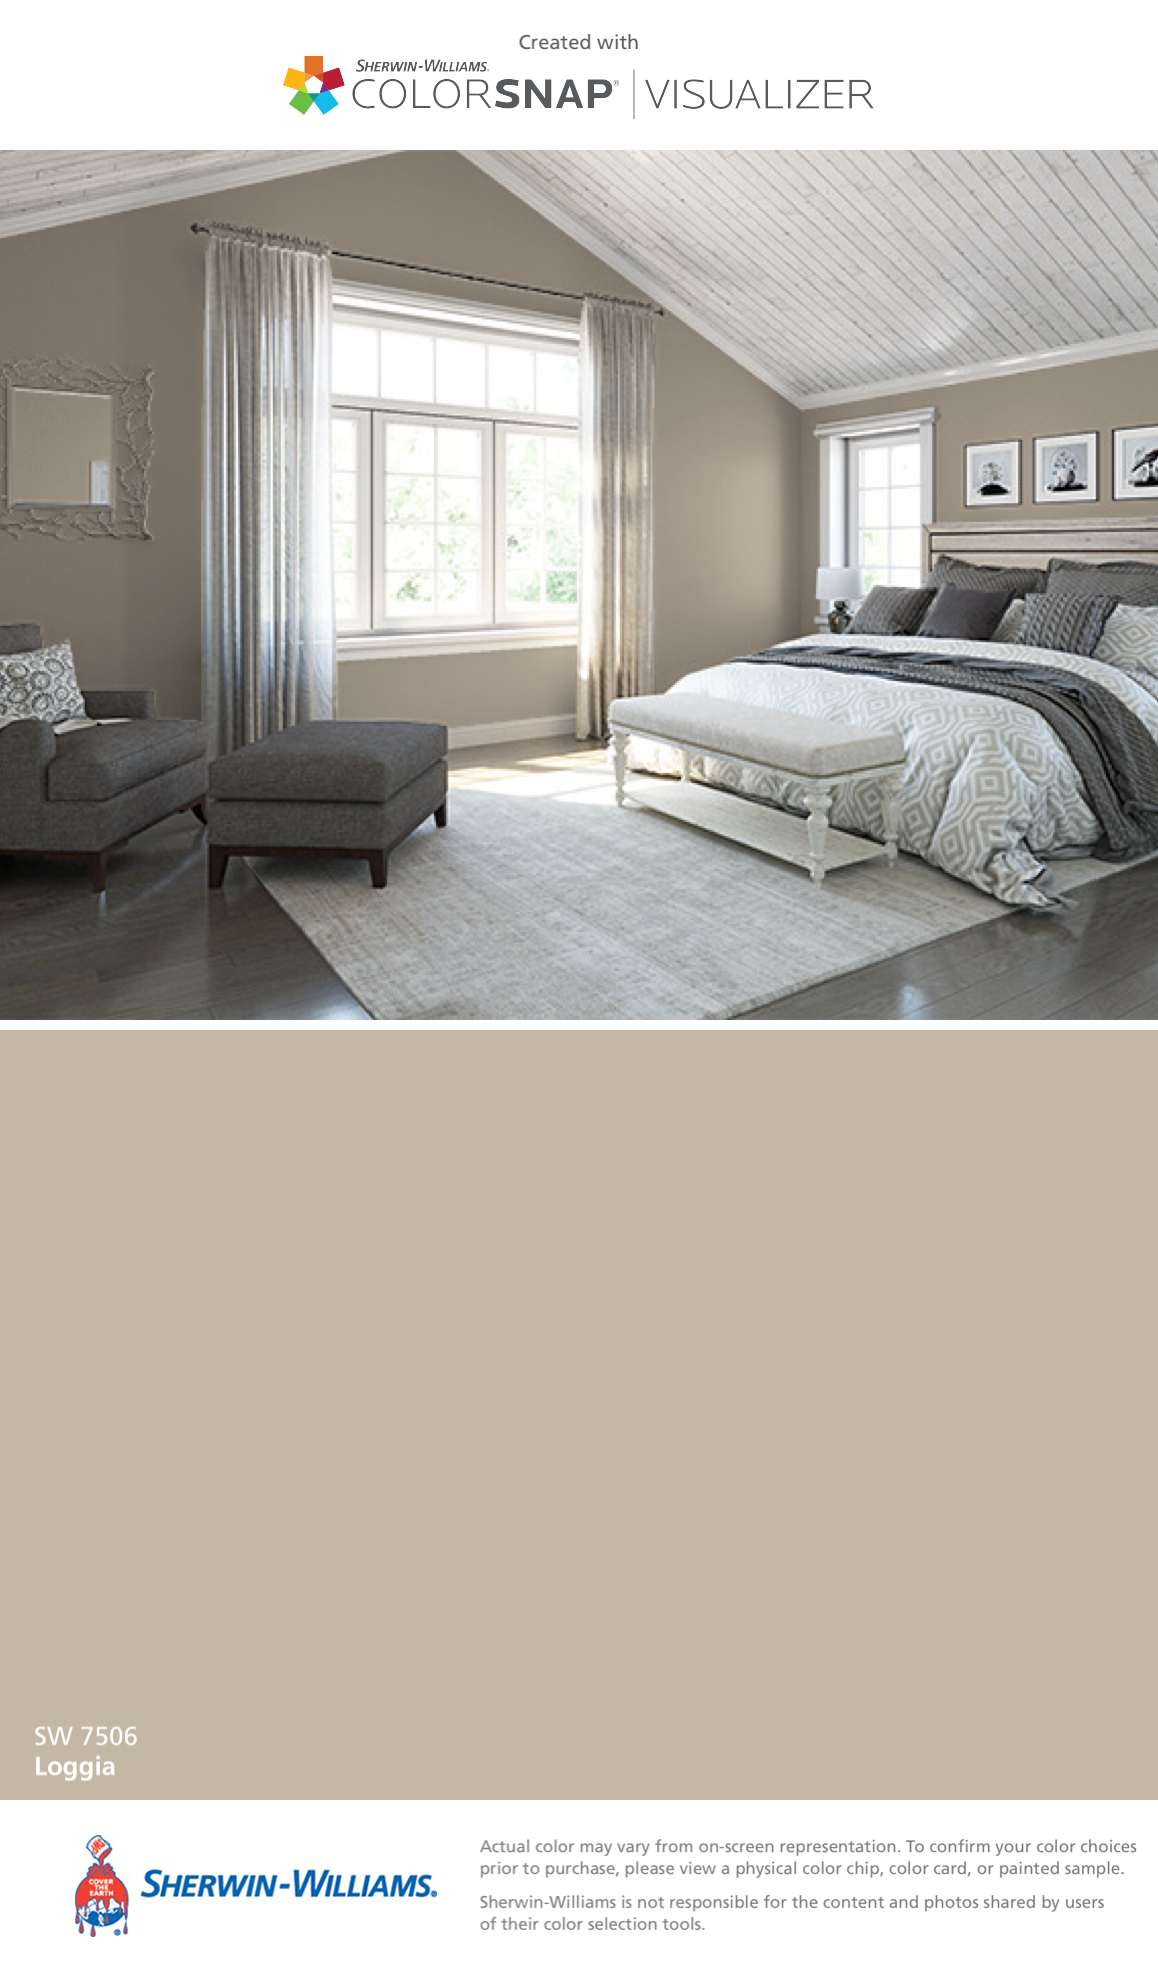 I found this color with colorsnap visualizer for iphone by sherwin williams loggia sw 7506